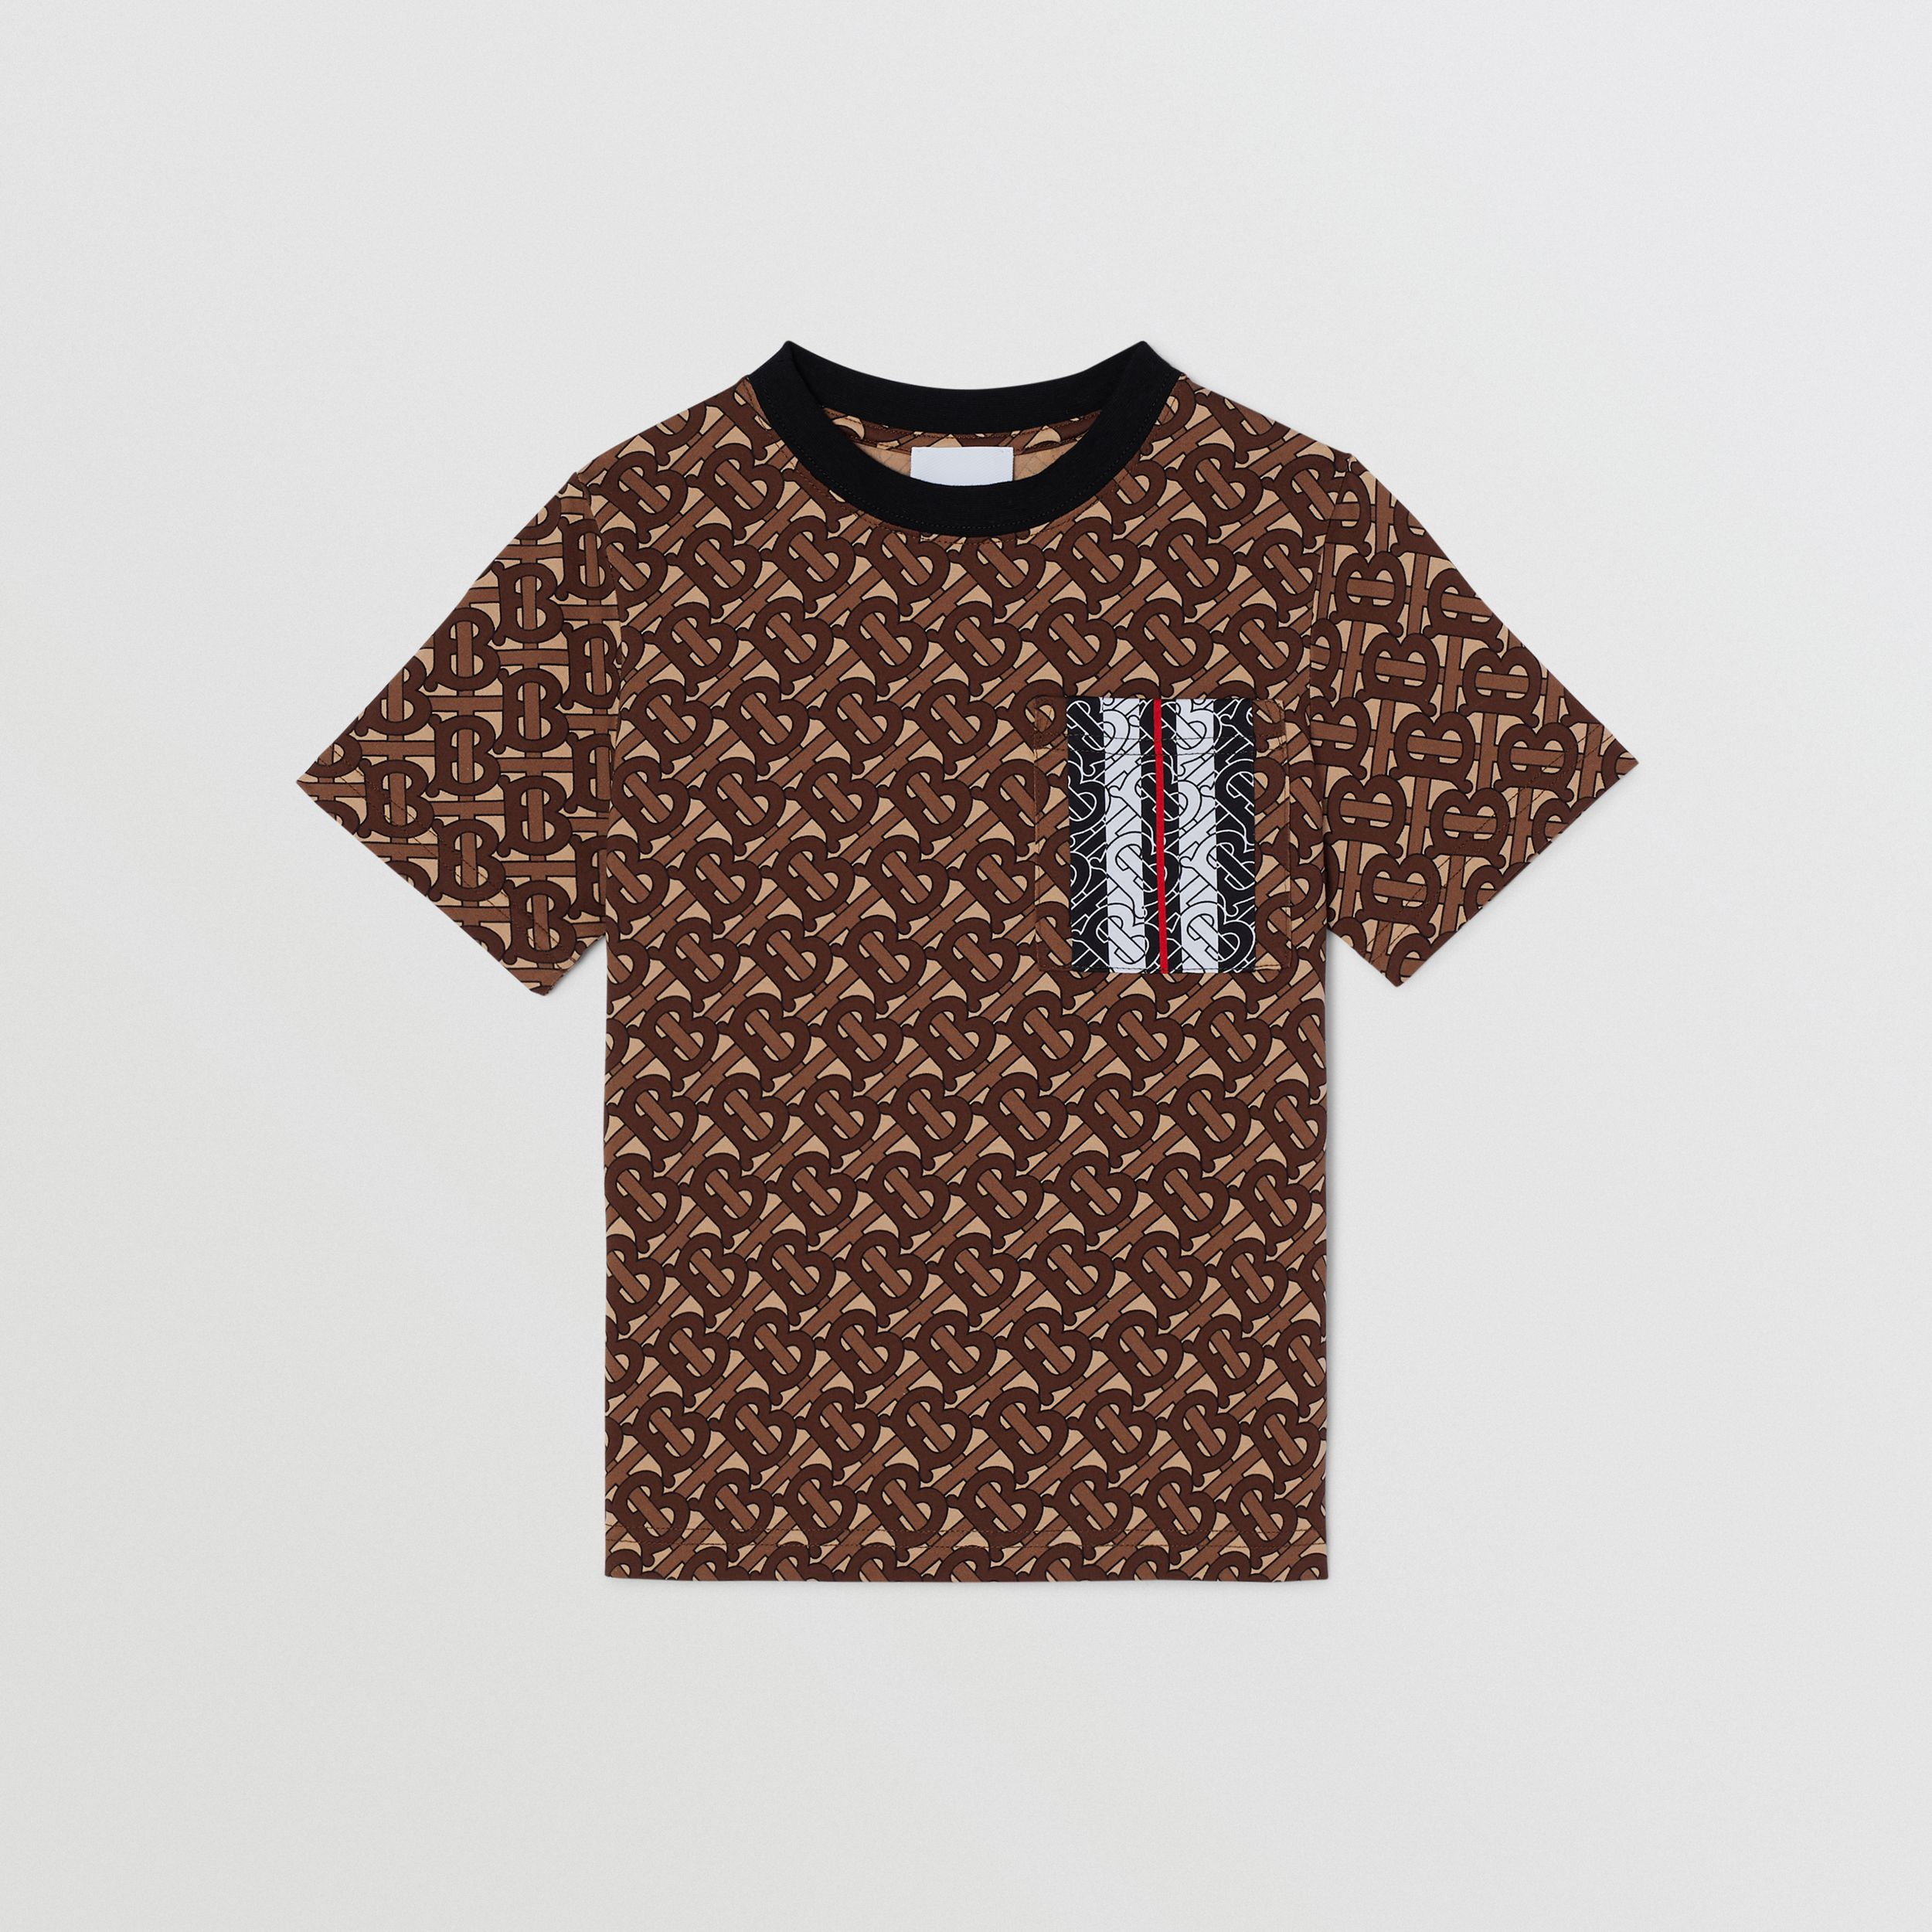 Monogram Stripe Print Cotton T-shirt in Bridle Brown | Burberry Canada - 1